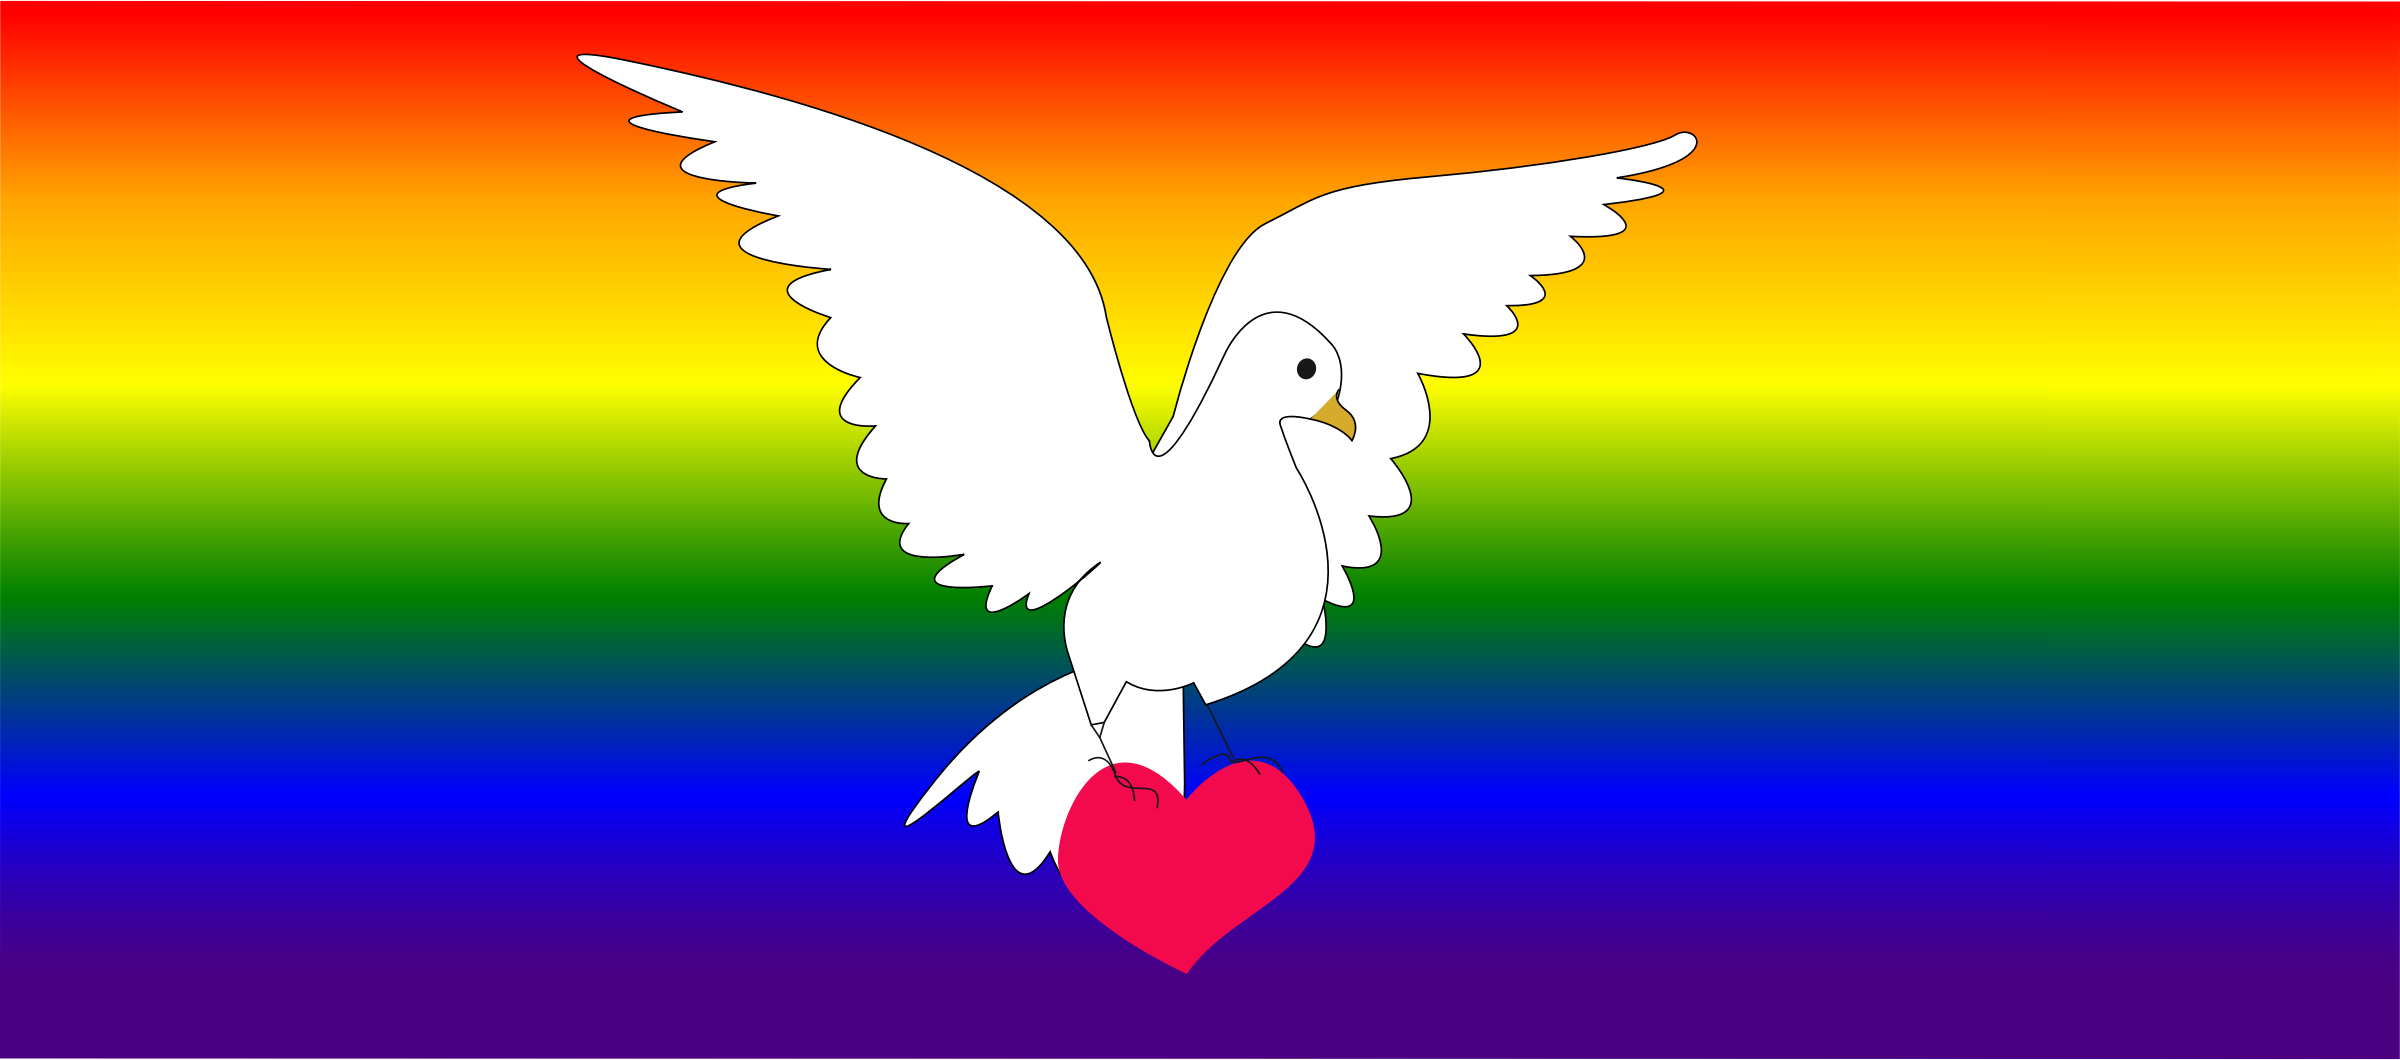 Dove of peace and love by presquesage